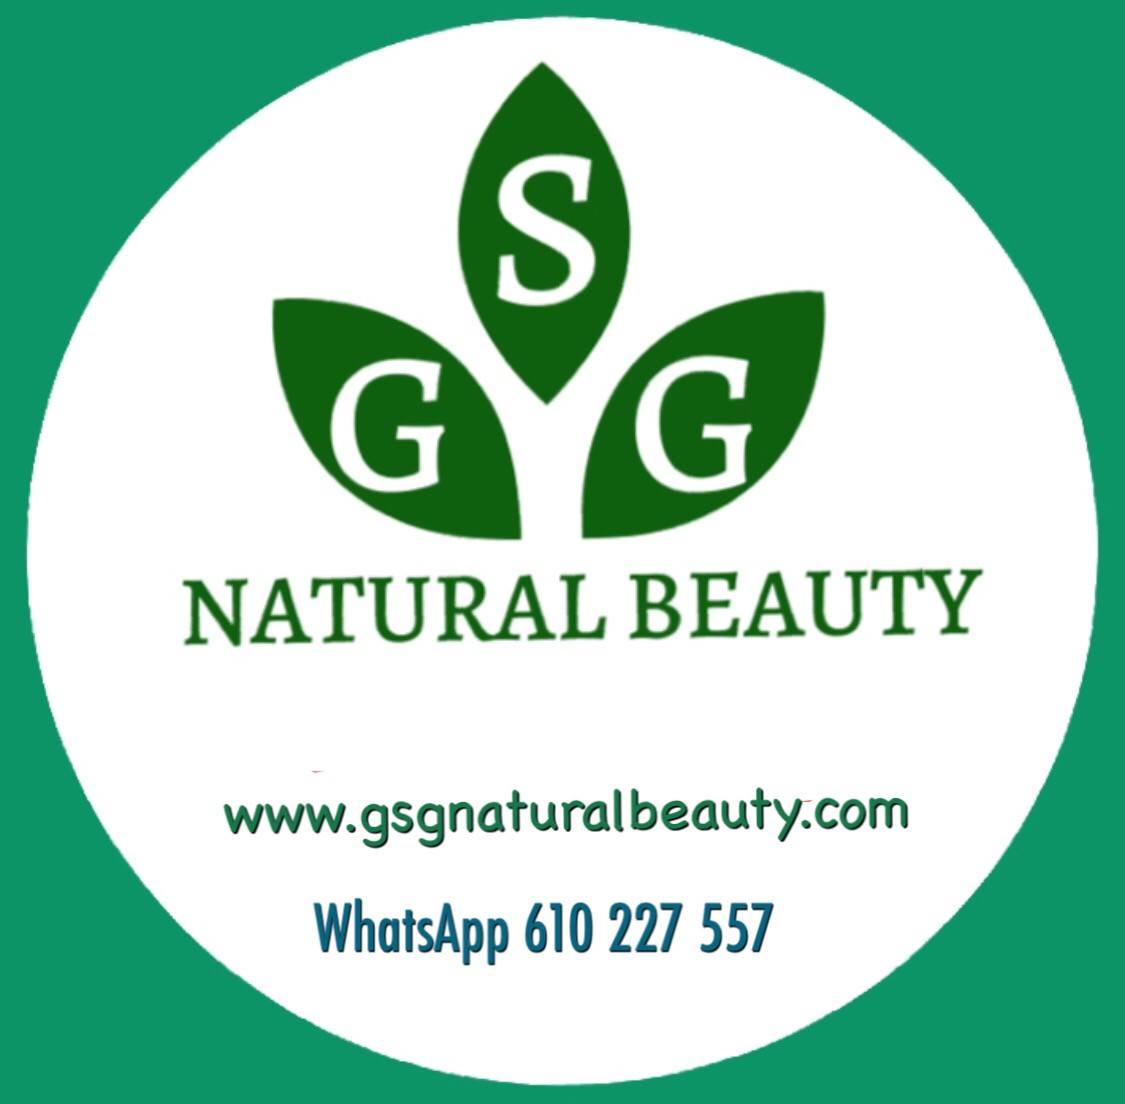 GSG Natural Beauty